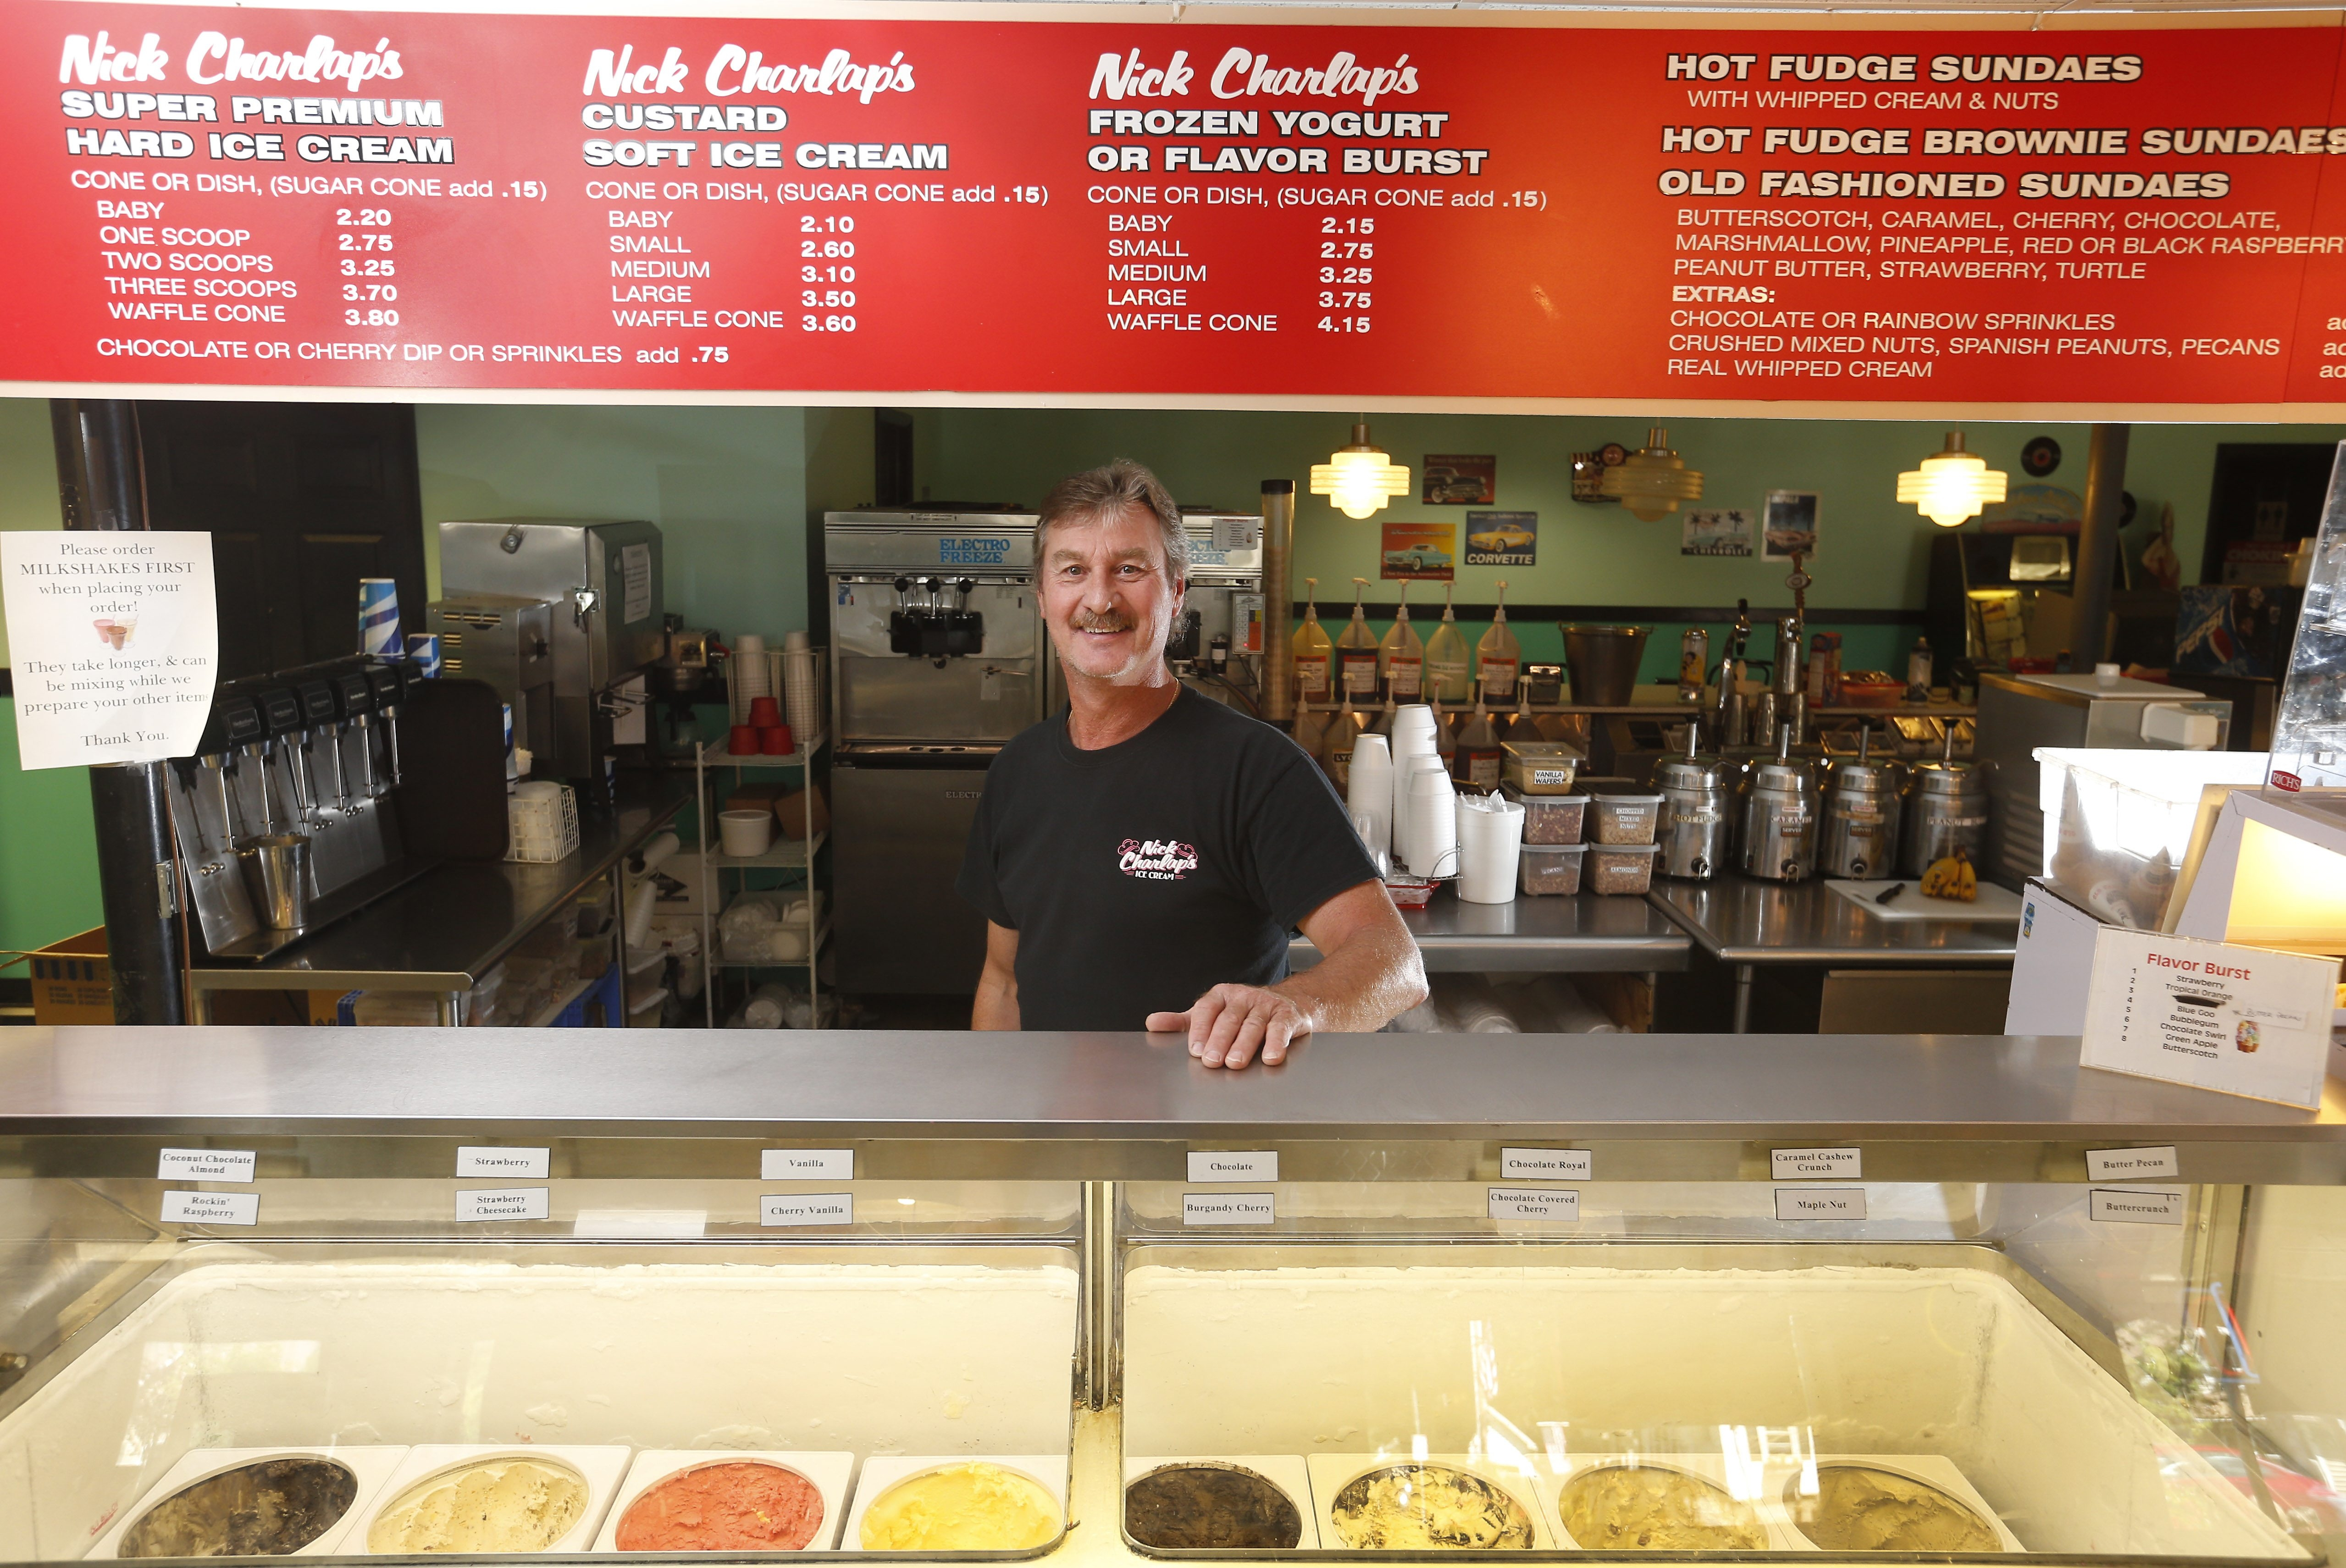 Nick Charlap swooped in after the company that bought his father's business sold its machinery, purchasing it for himself. That machinery now churns out 43 different flavors of ice cream in North Boston, and has several retail locations throughout WNY. His father continues to help by labeling the tubs of ice cream.